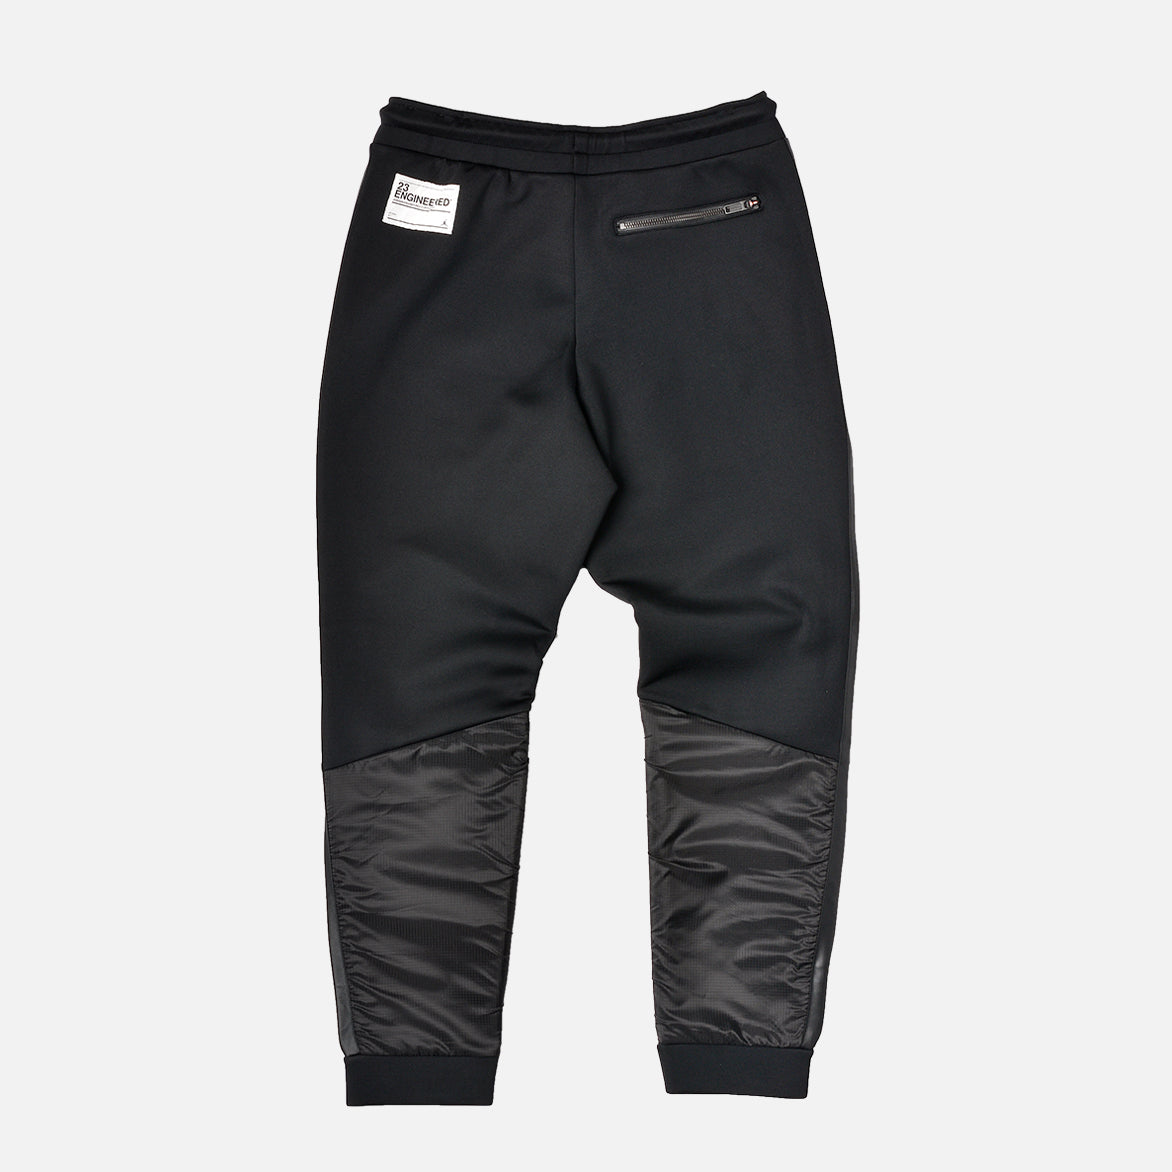 23 ENGINEERED TROUSERS - BLACK / WHITE